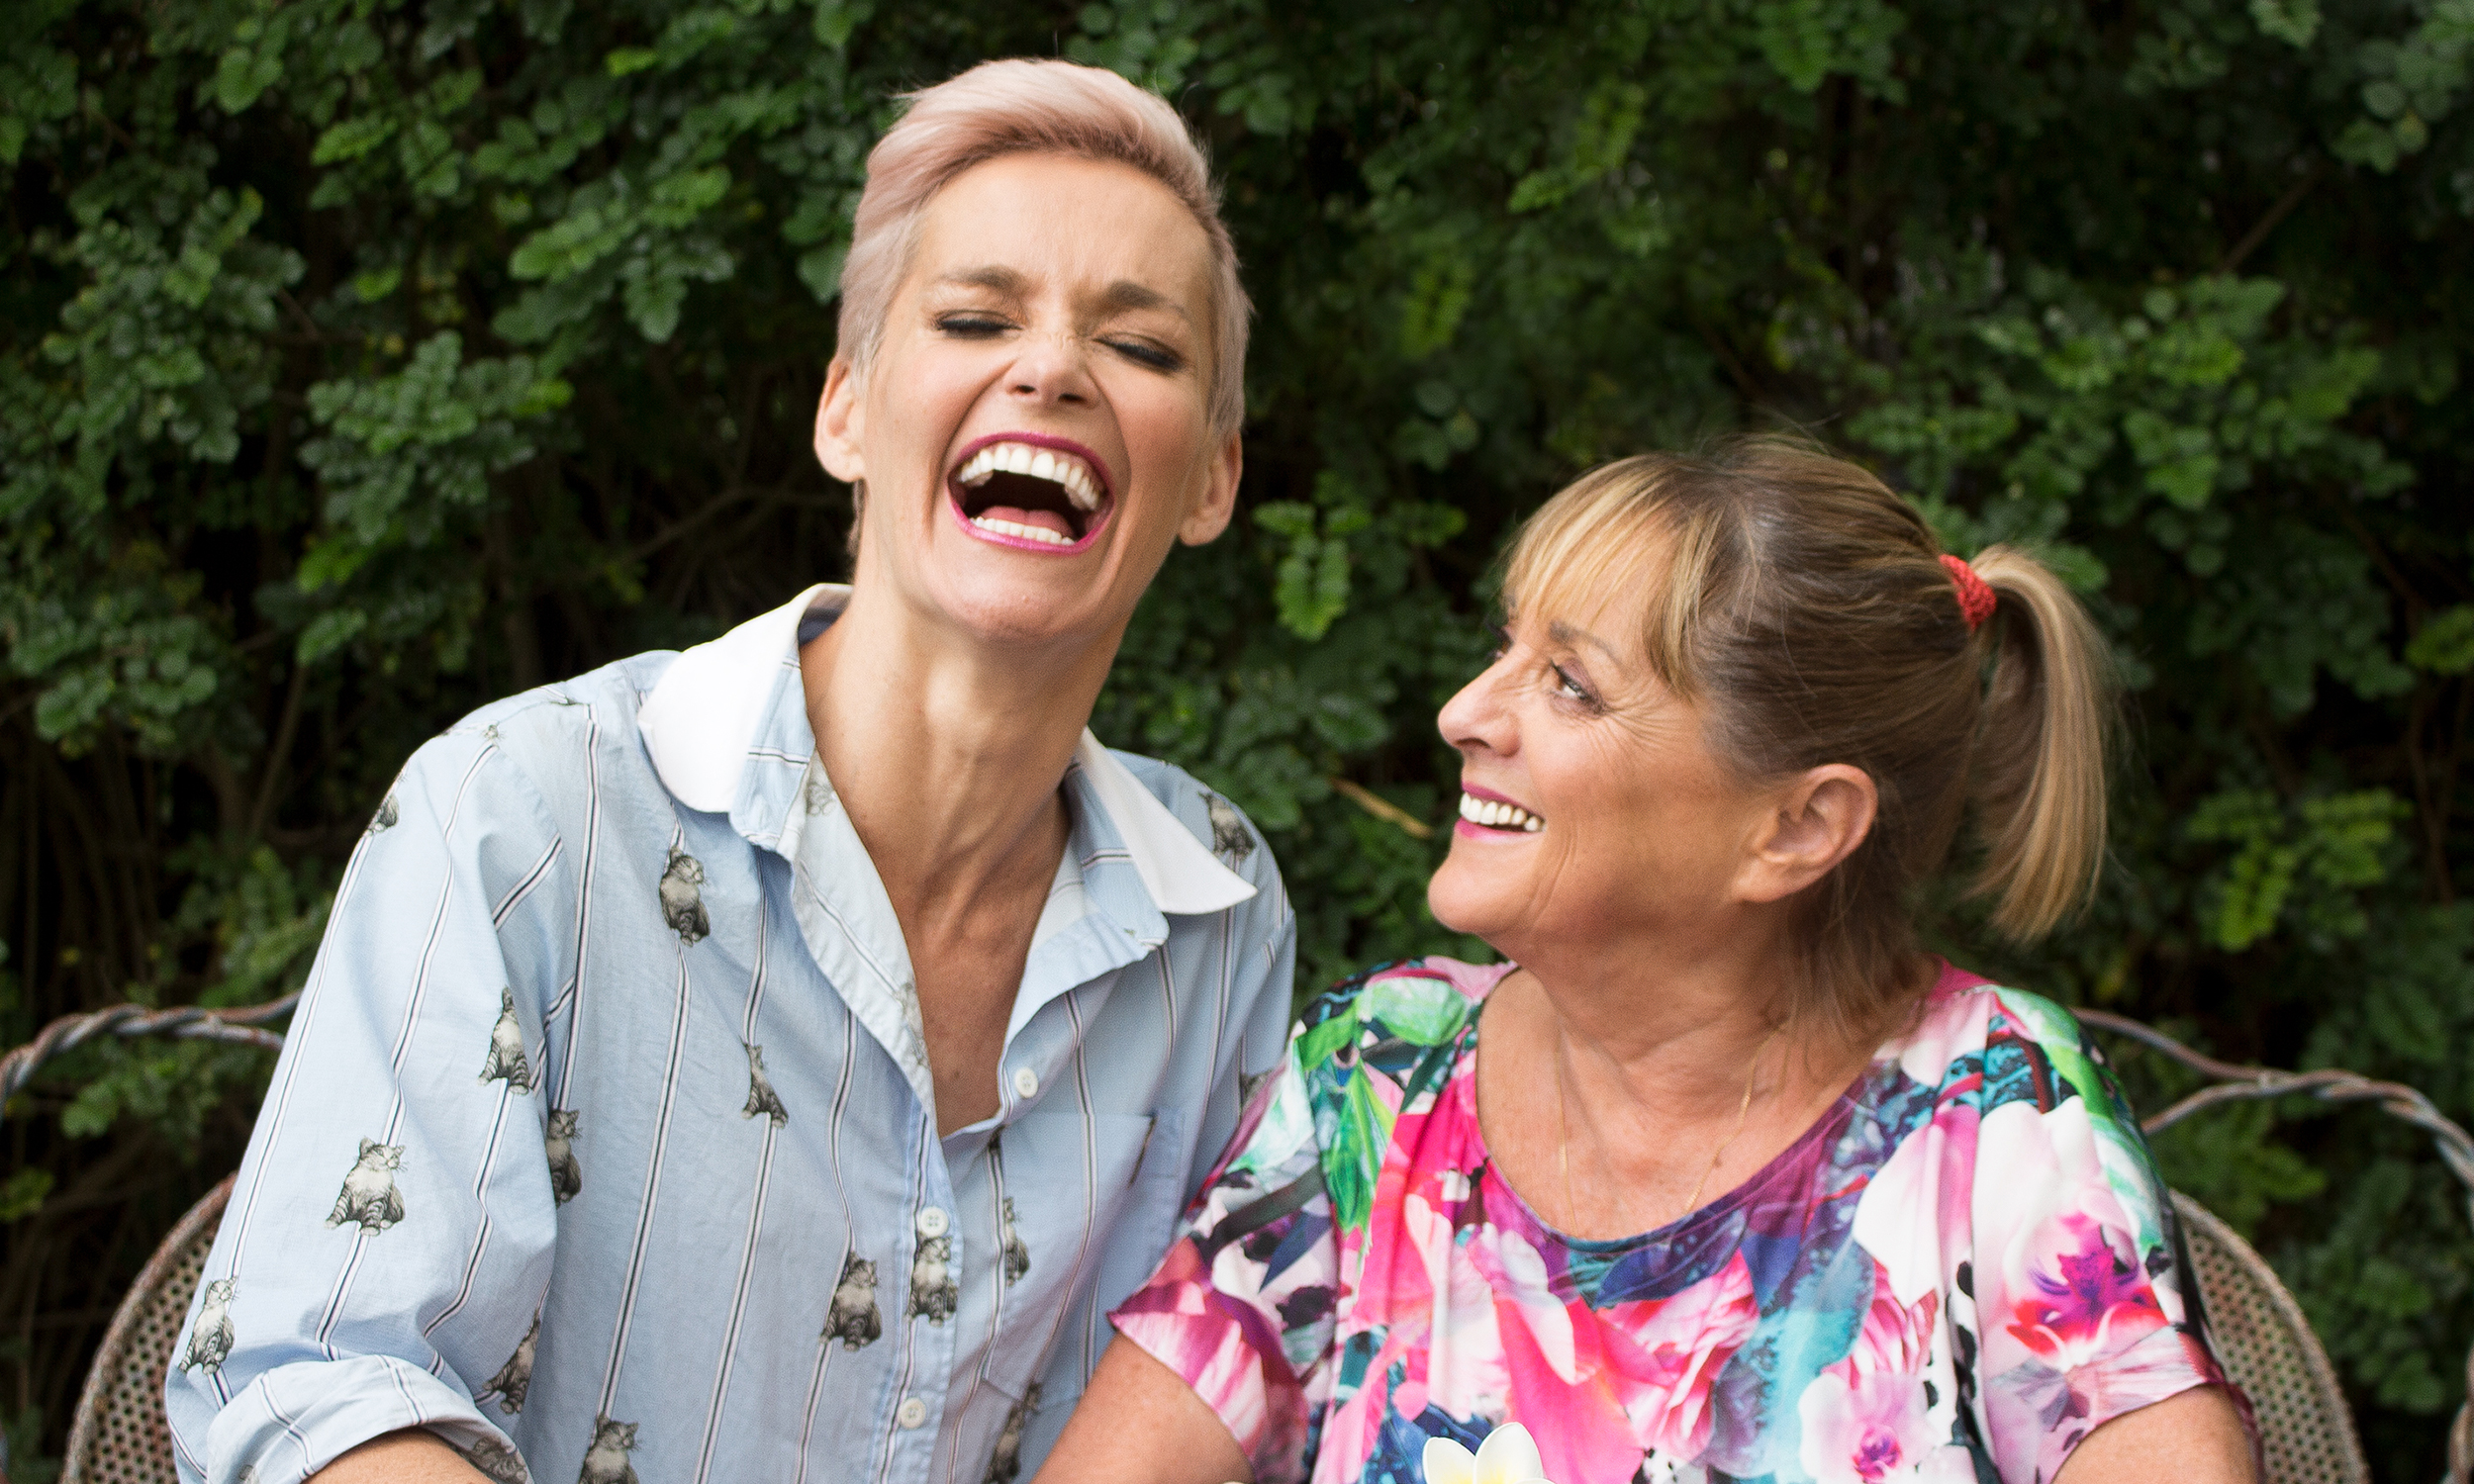 Listen now. - One Fat Lady and One Thin Lady by Jessica Rowe and Denise Drysdale is now available on all podcast sites and Virgin Australia in-flight entertainment.